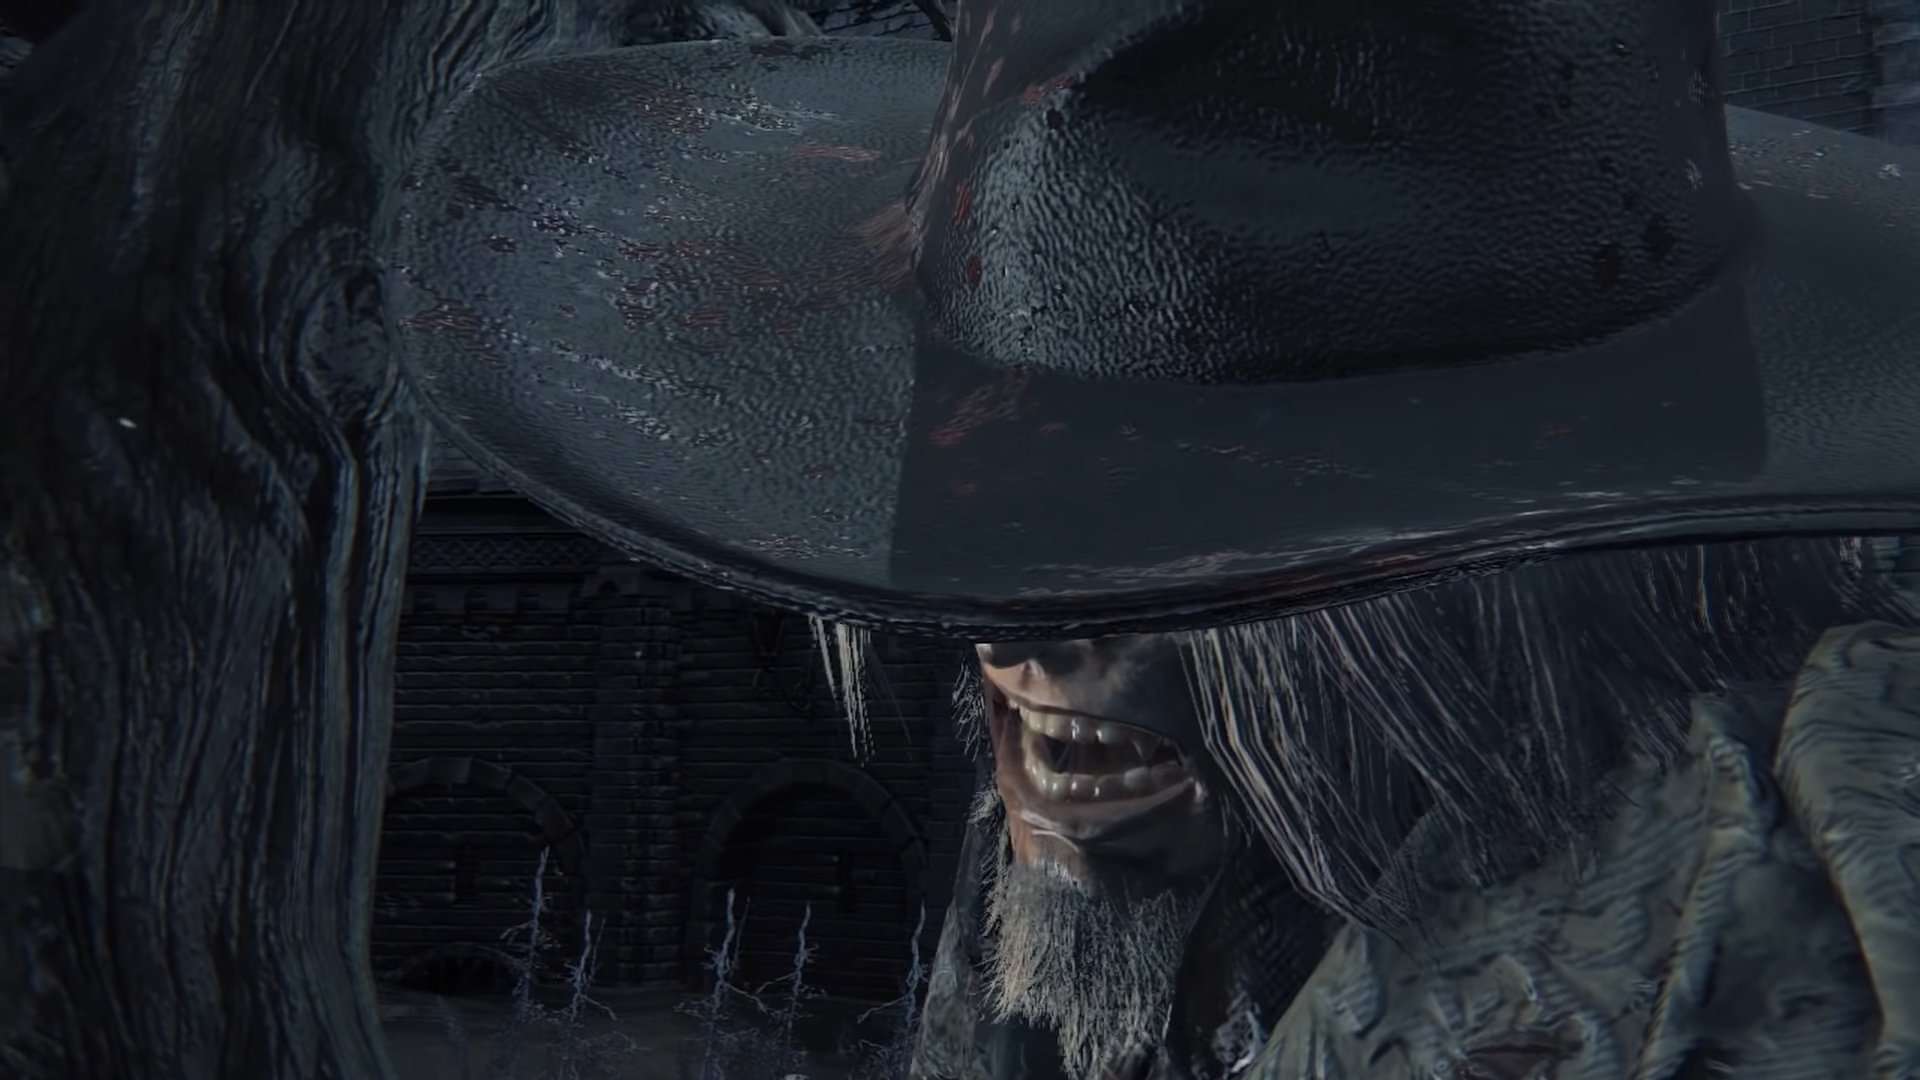 While we dream about a PS5 patch for Bloodborne, here's the game running at 60FPS on a PS4 Pro screenshot